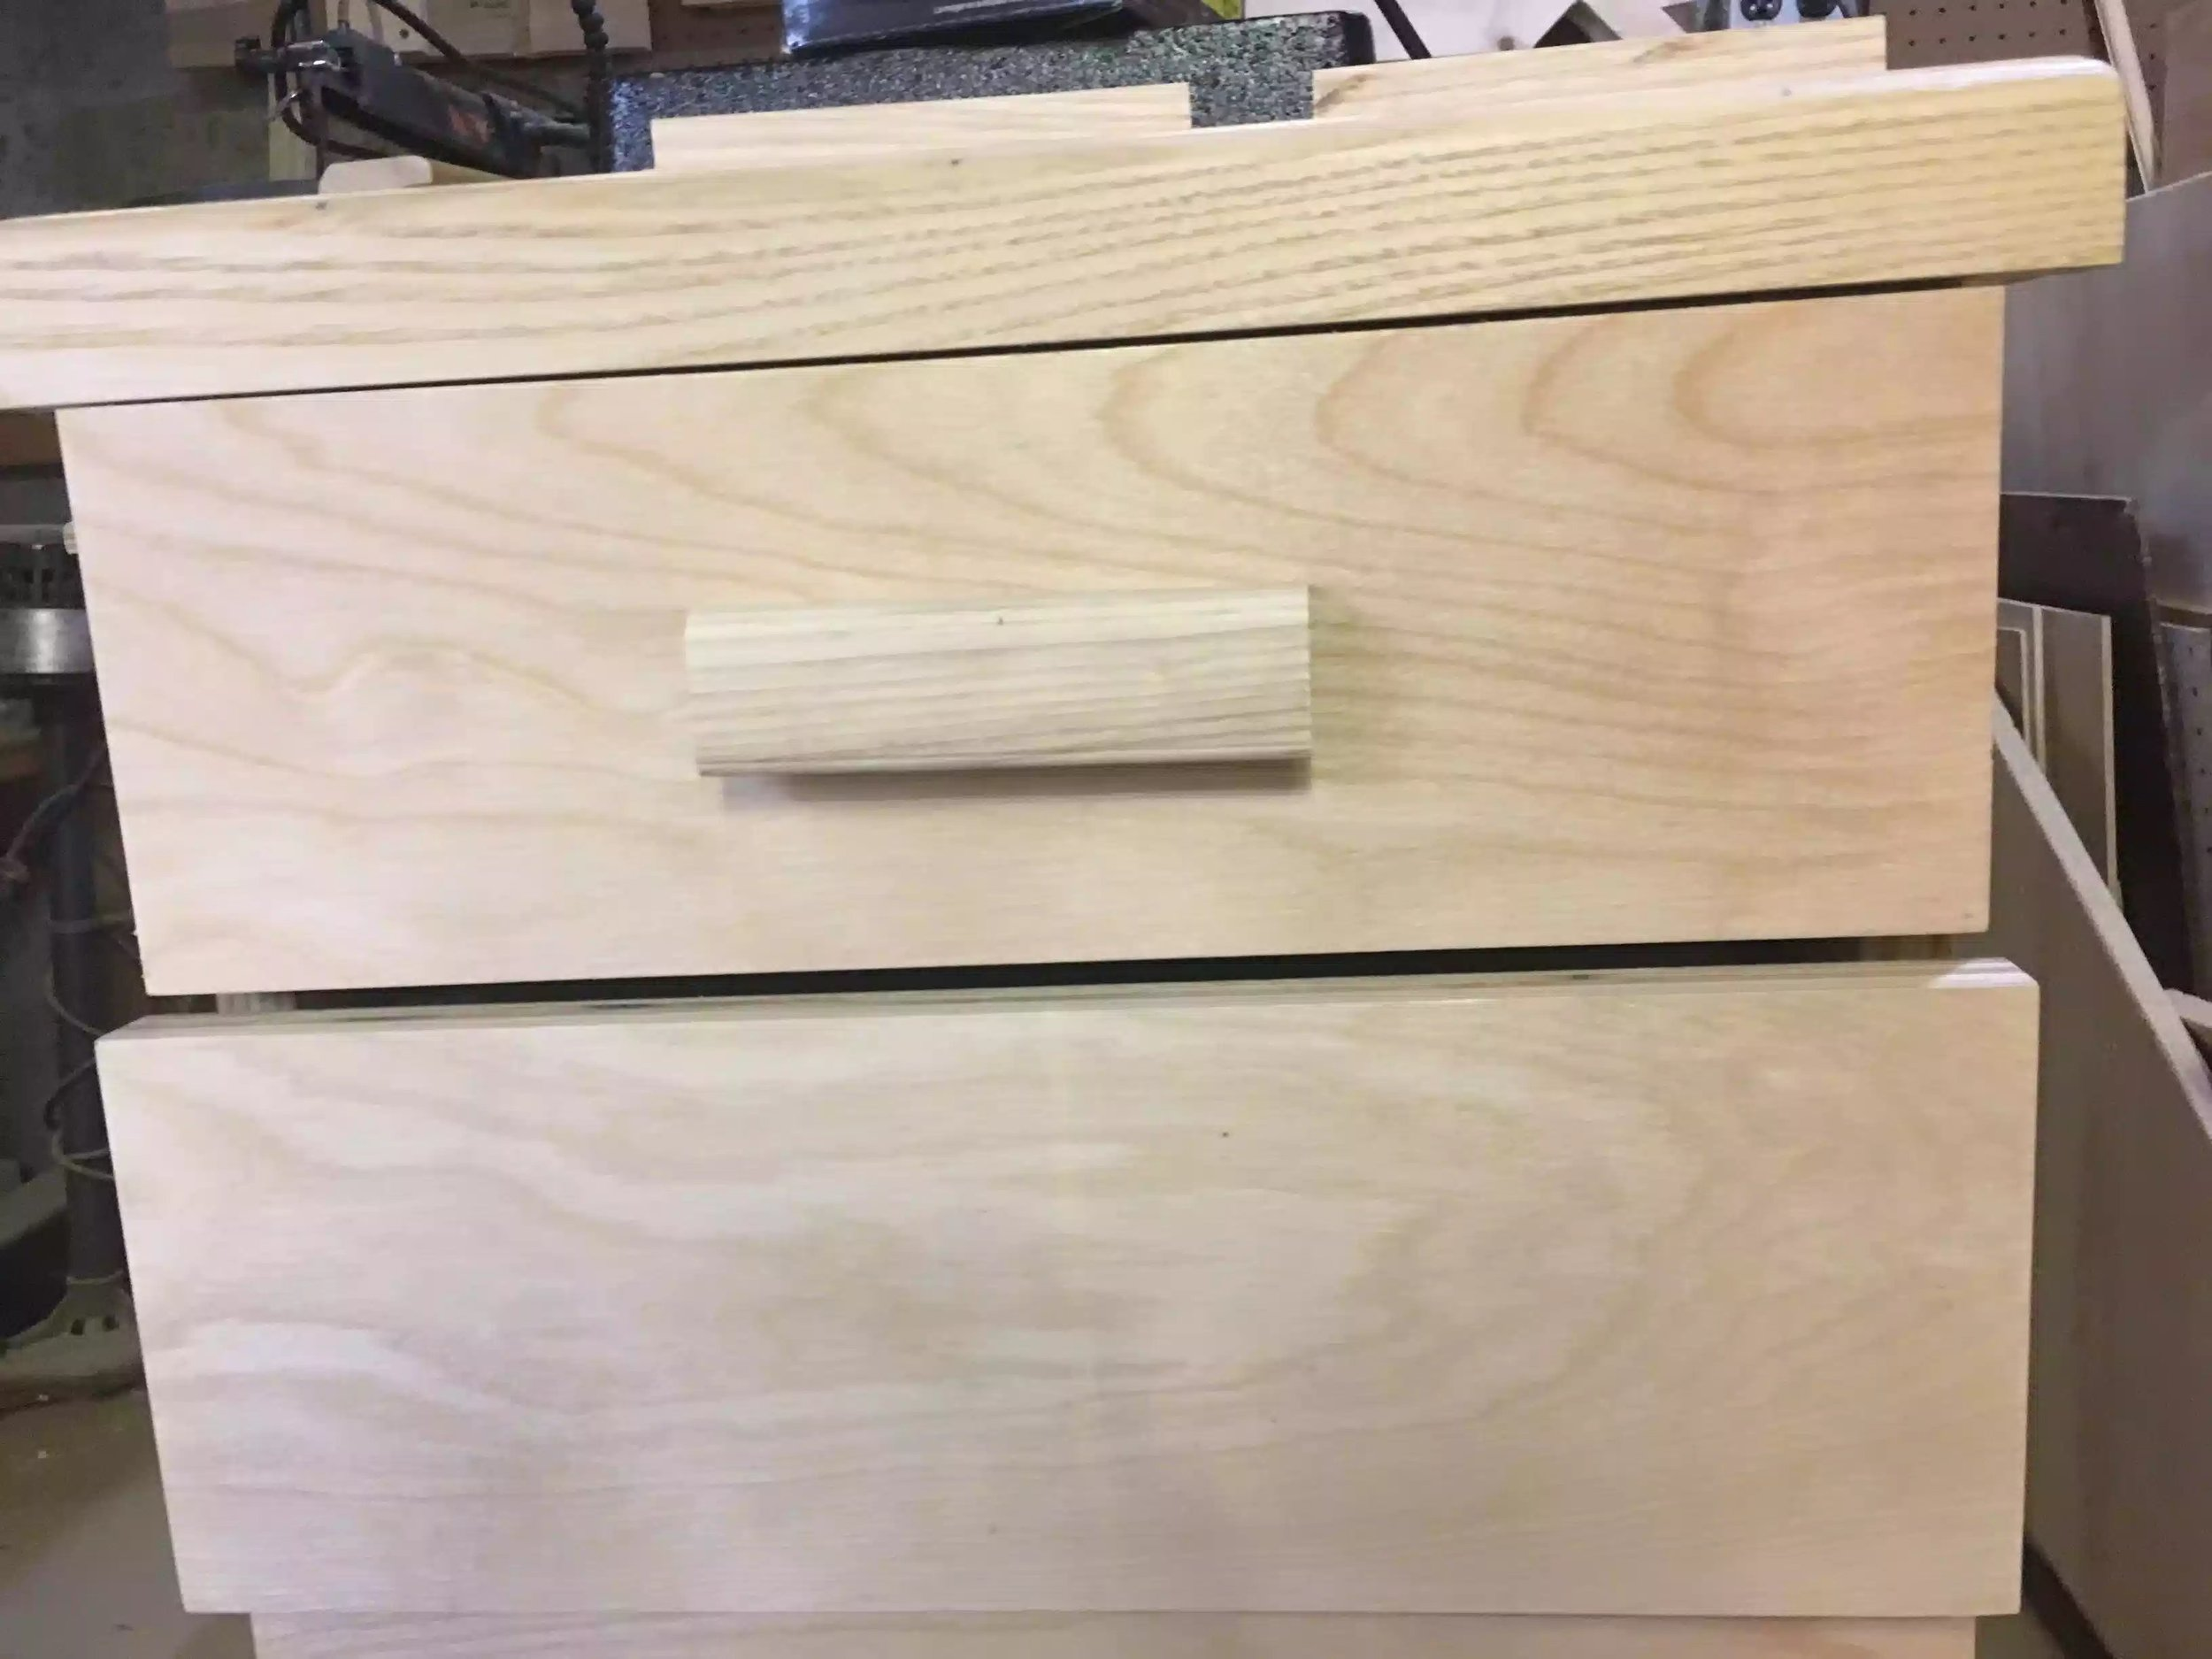 Here is the first drawer pull installed and I have to say that the pulls look awesome and match the solid edge banding on the cabinet top.